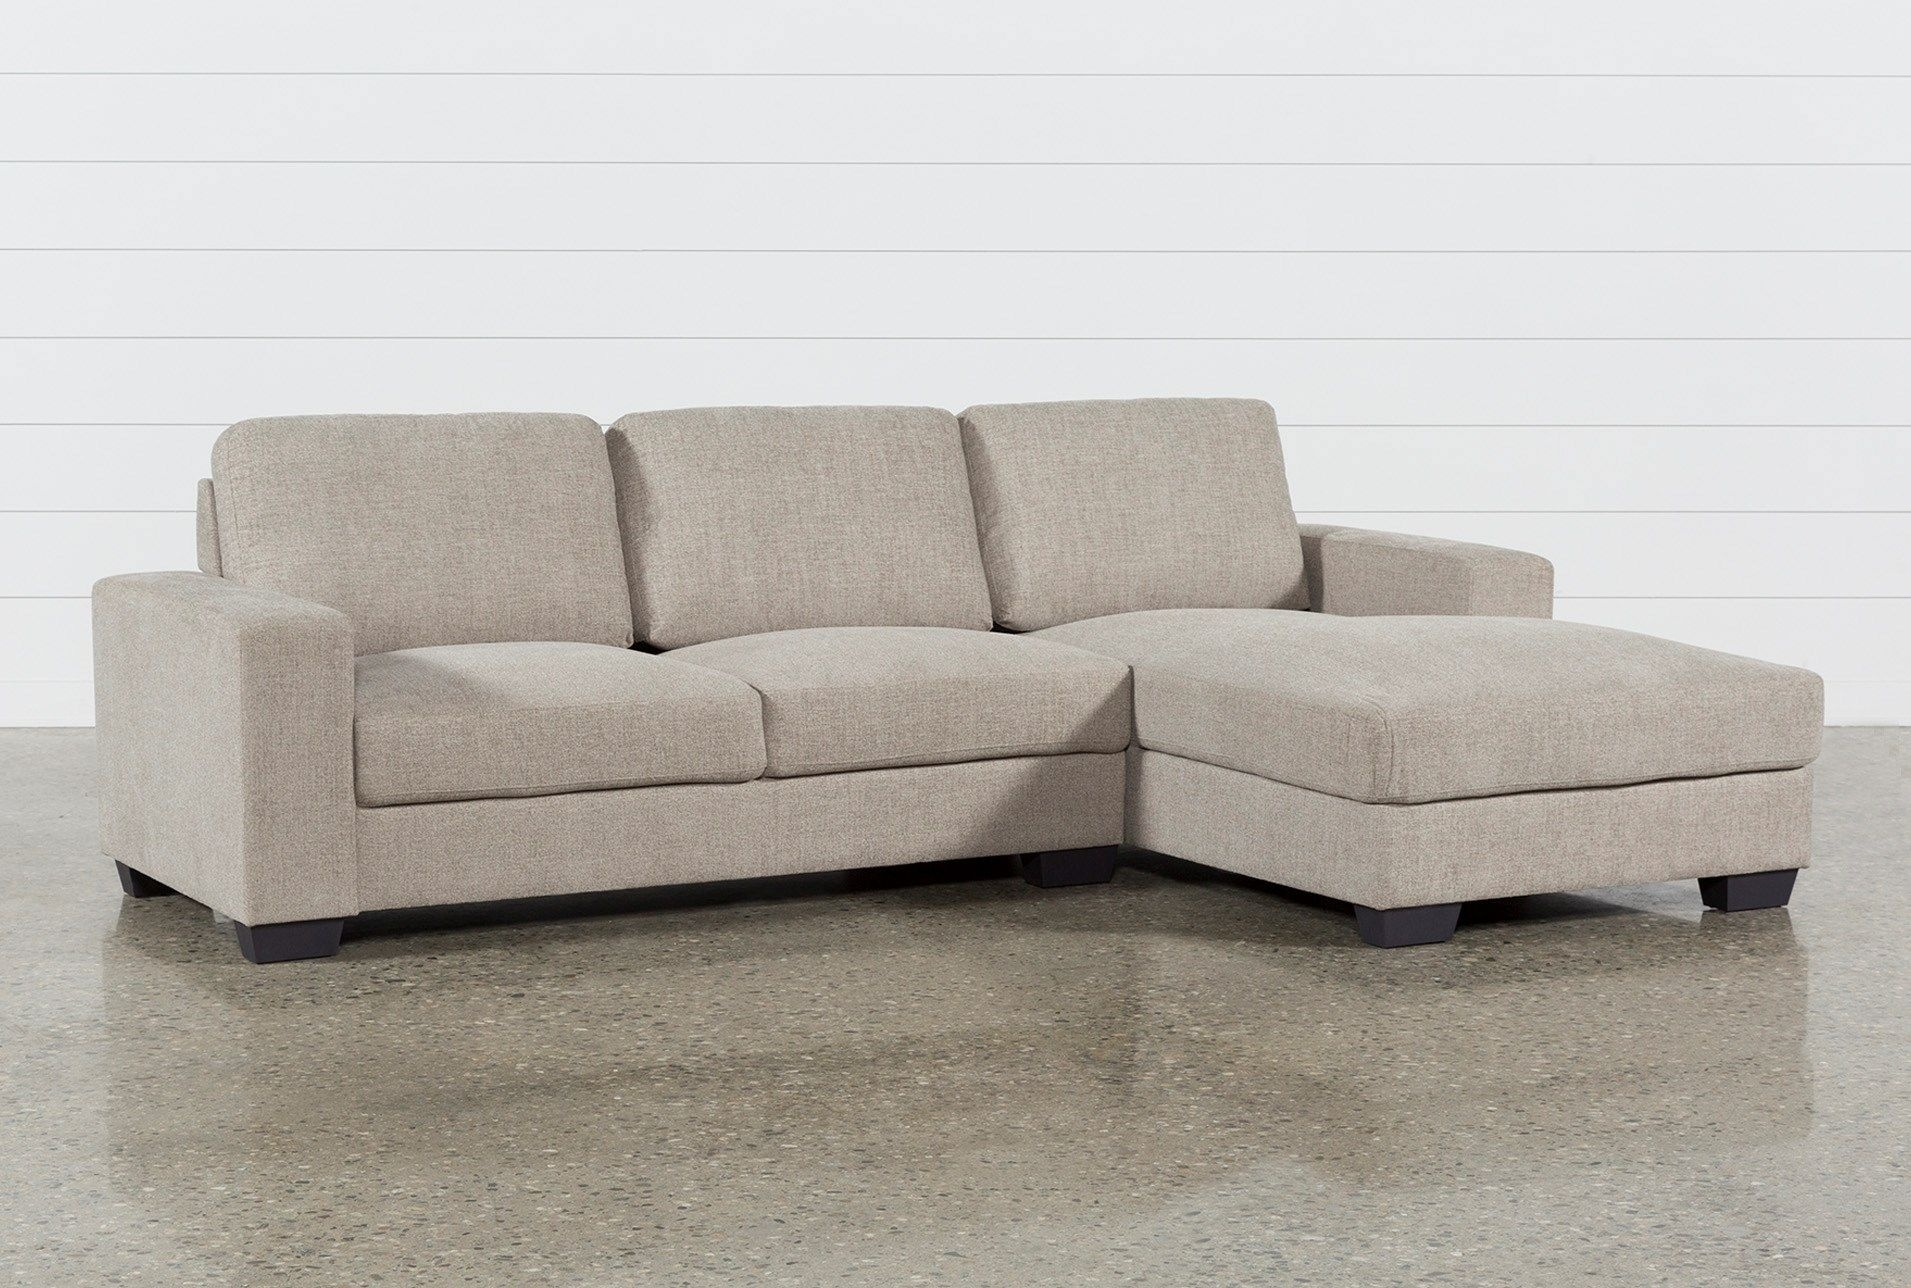 Jobs Oat 2 Piece Sectional With Right Facing Chaise In 2018 Within Arrowmask 2 Piece Sectionals With Sleeper & Left Facing Chaise (View 13 of 25)